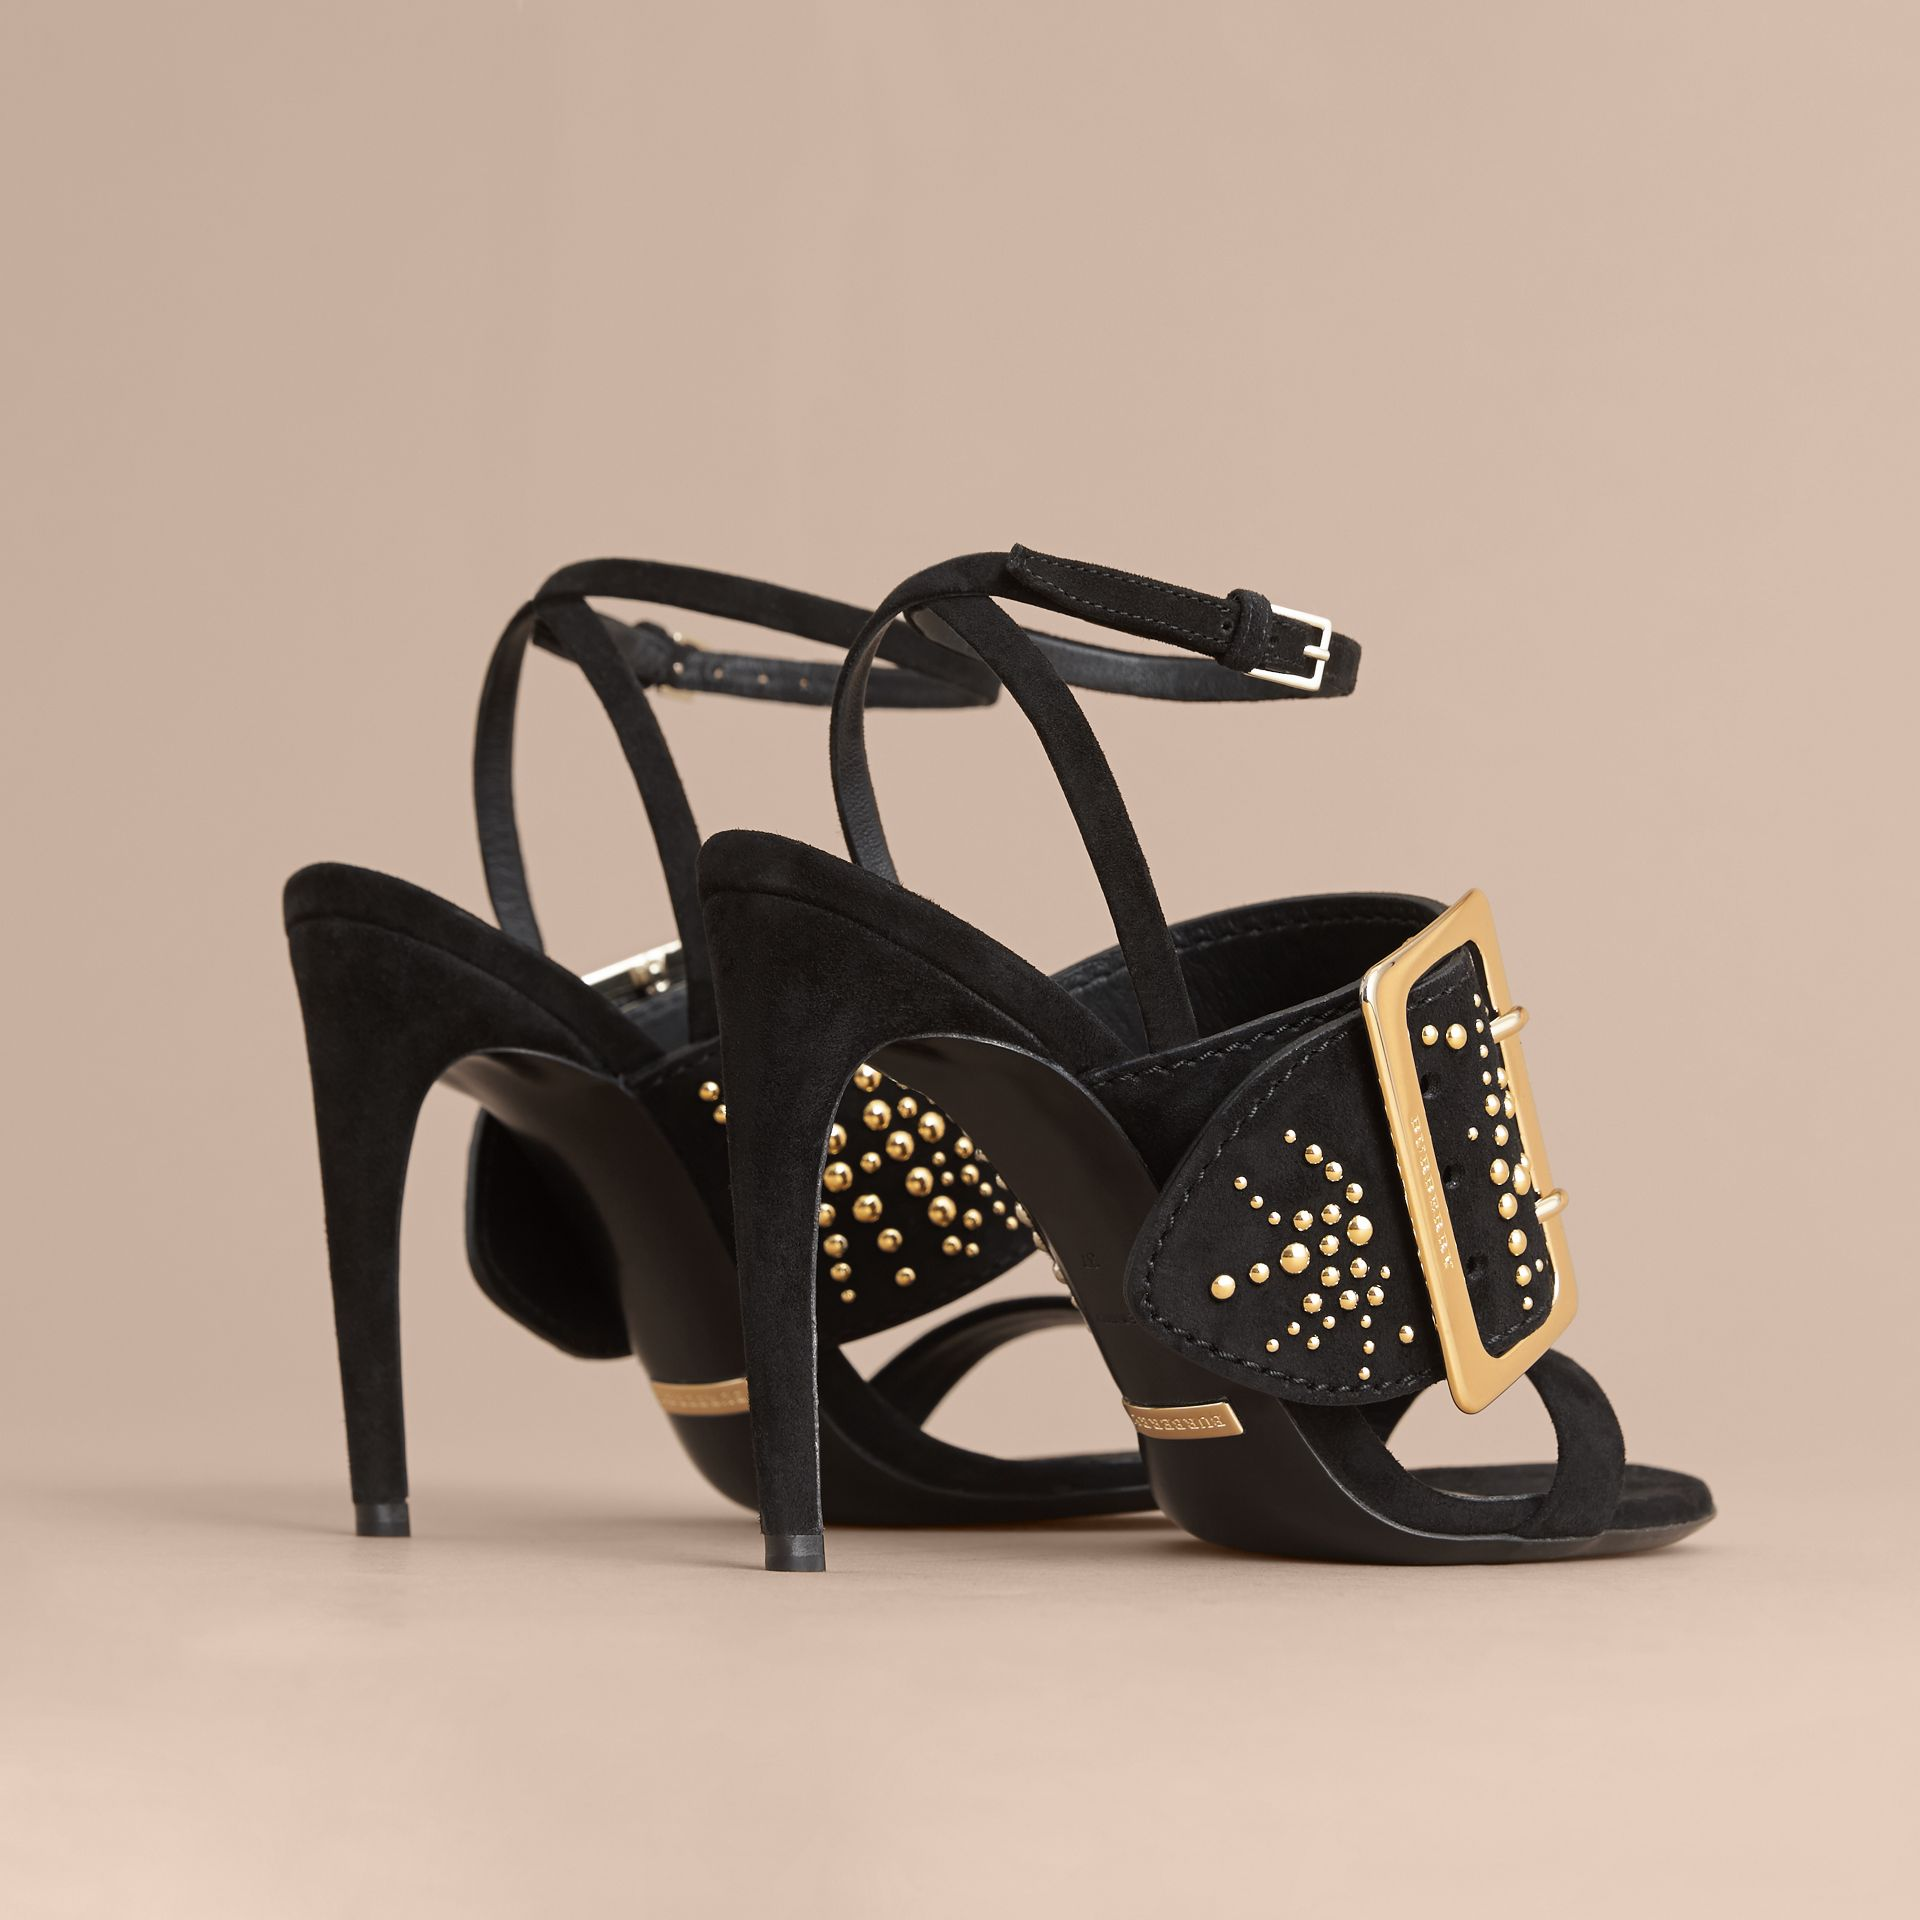 Riveted Suede Sandals with Buckle Detail in Black - Women | Burberry - gallery image 2